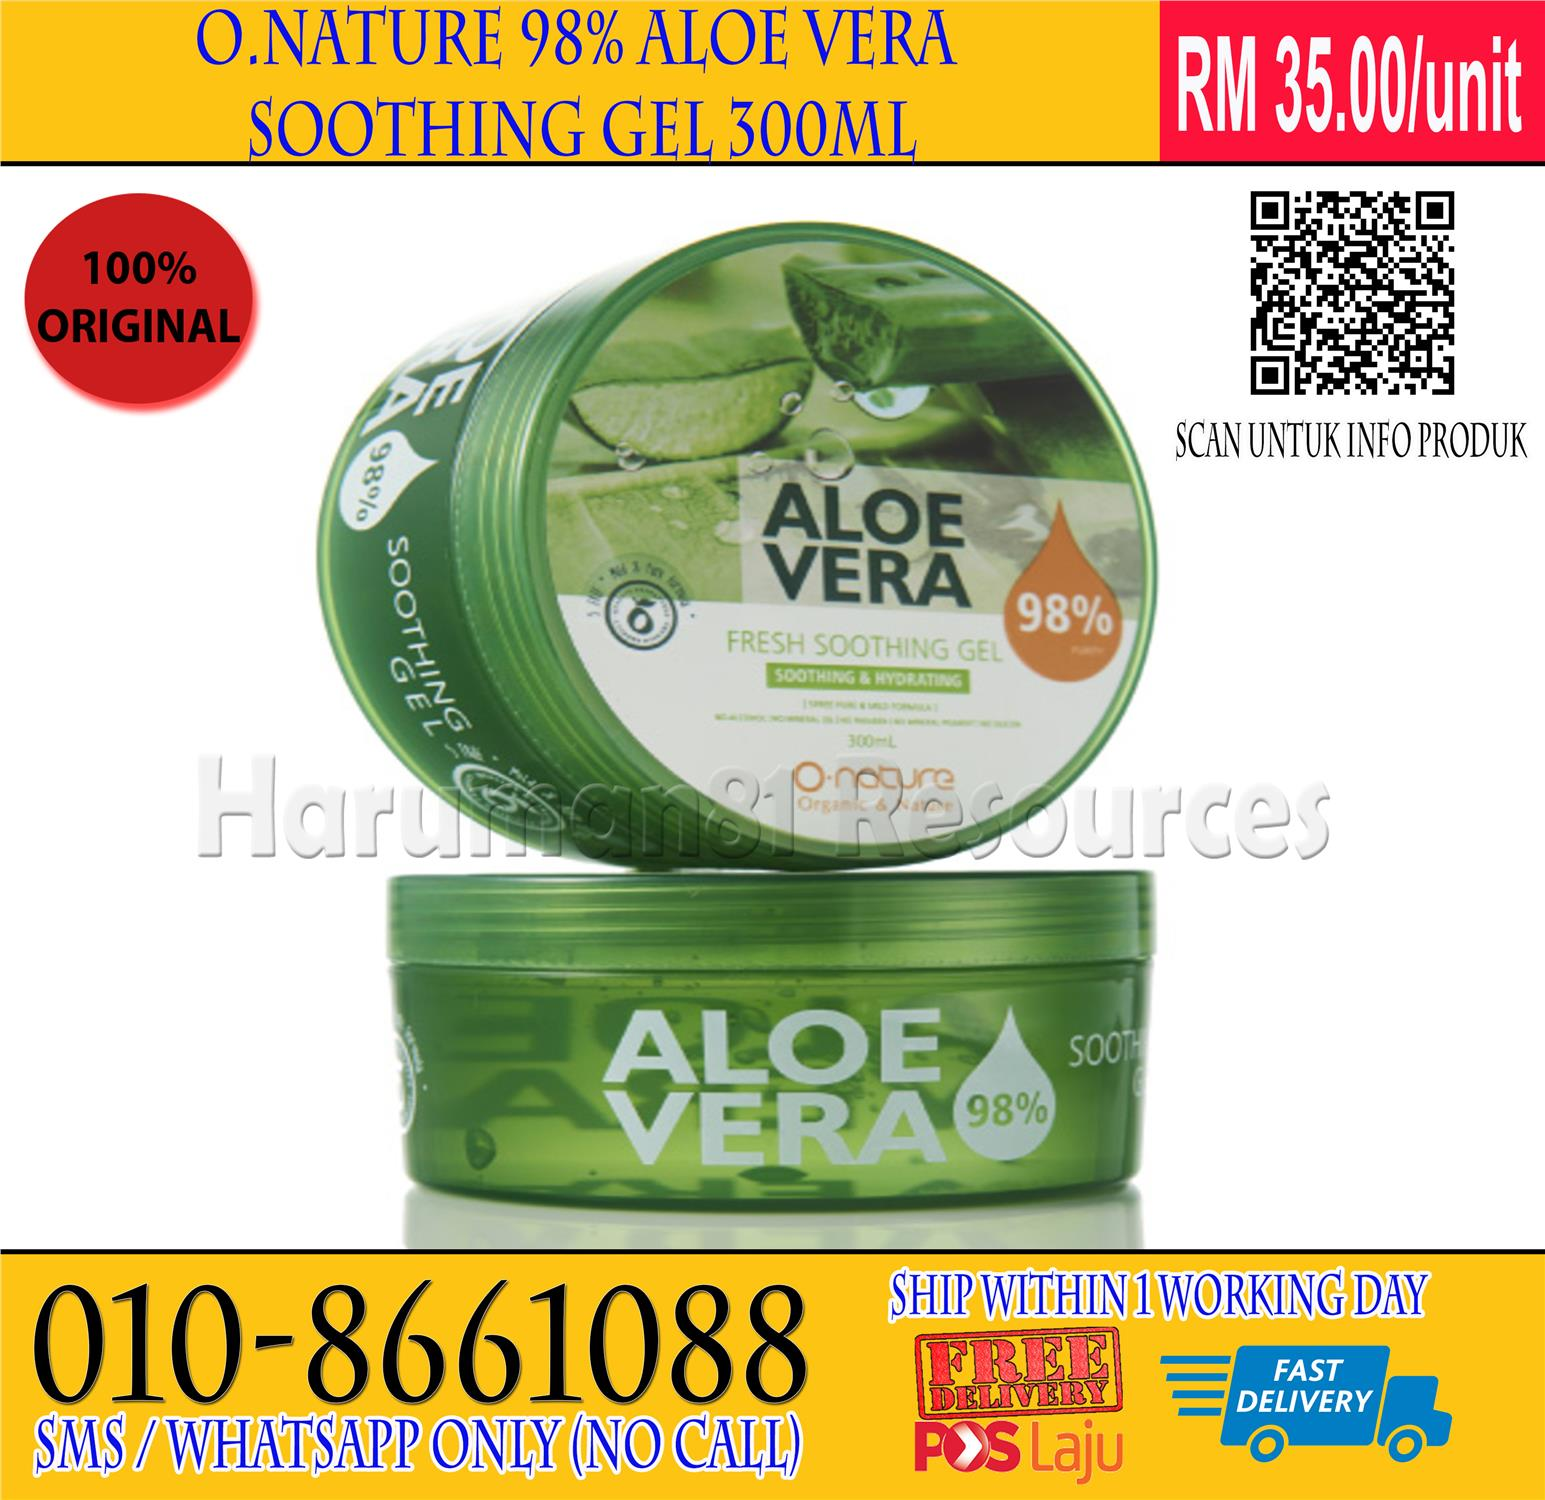 FREE POS - O. Nature 98% Aloe Vera Soothing Gel 150mL or 300mL